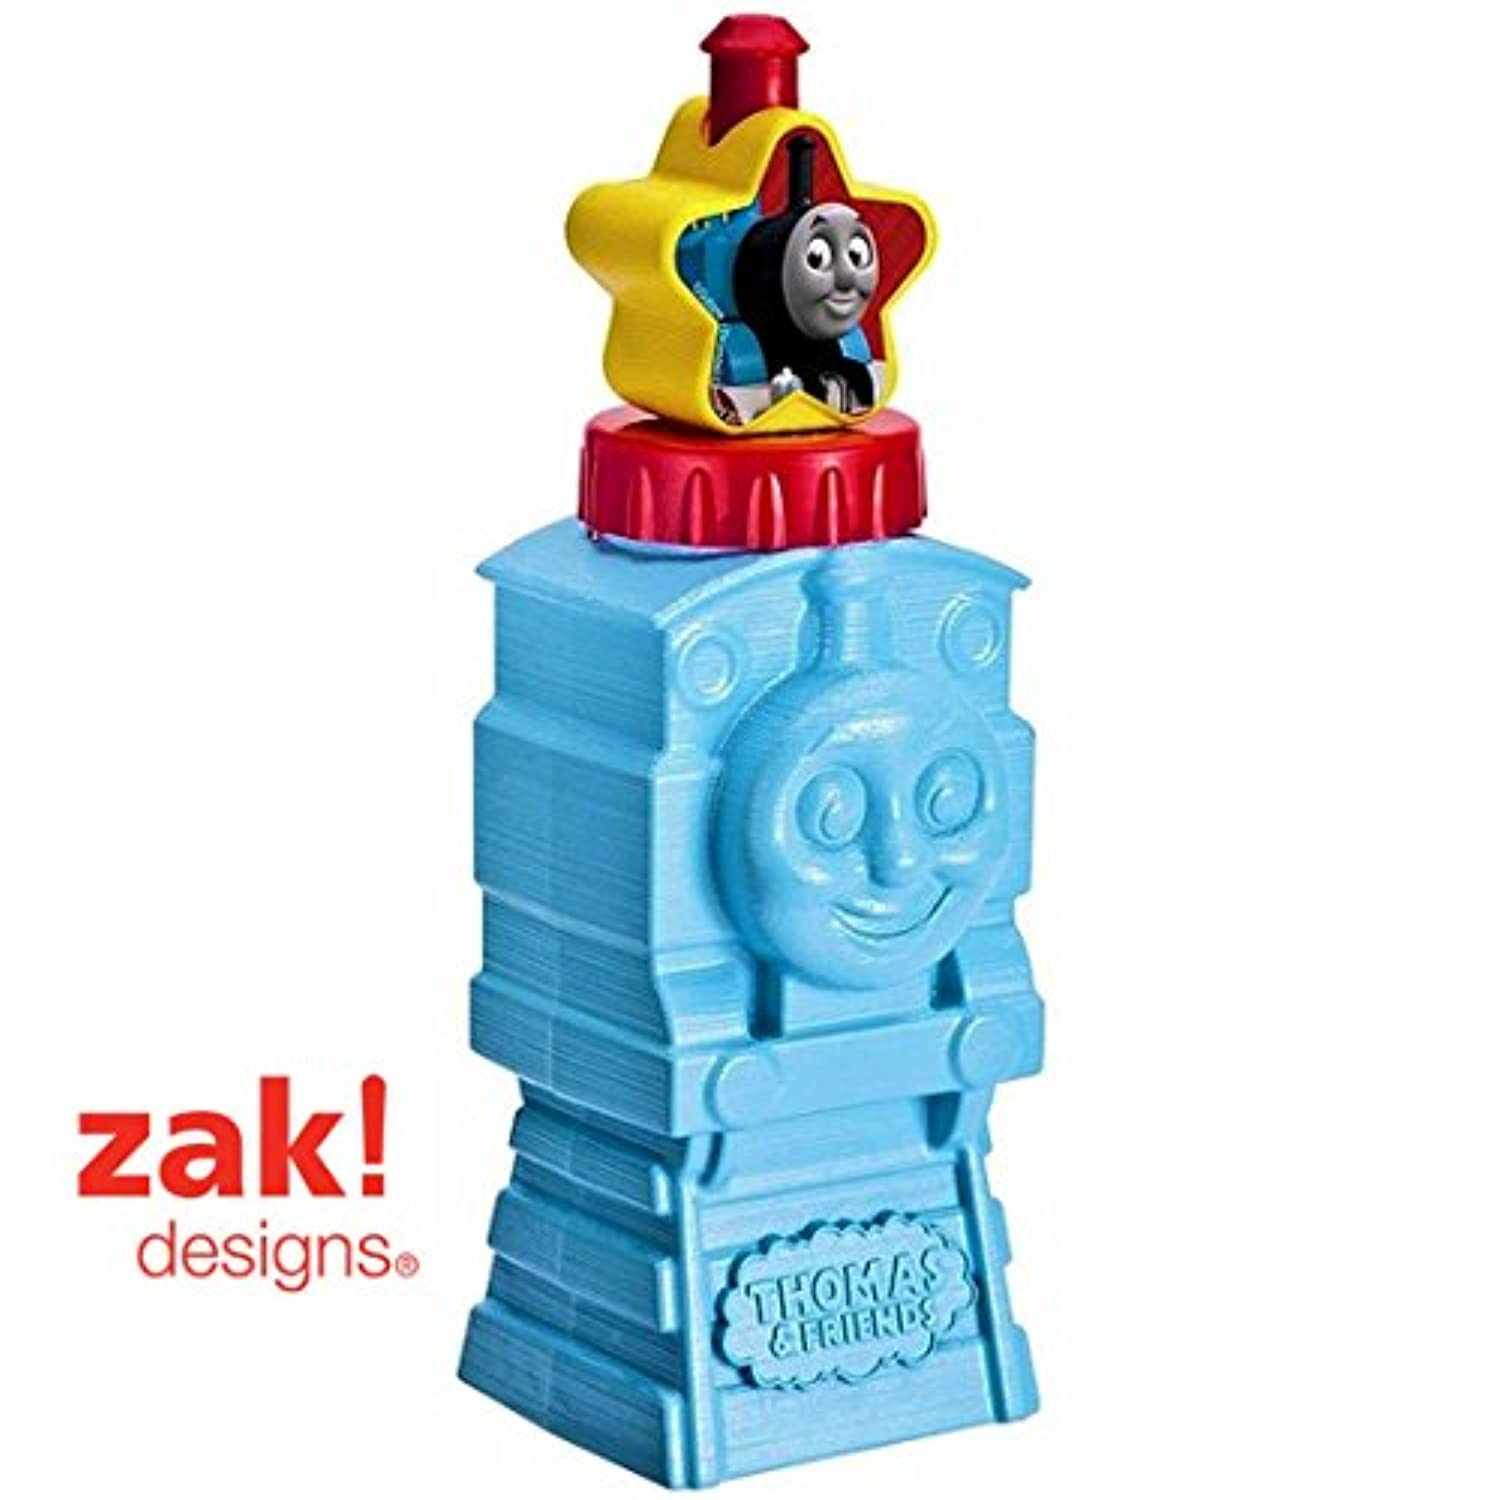 Thomas the Train Shaped Water Bottle by Zak Designs